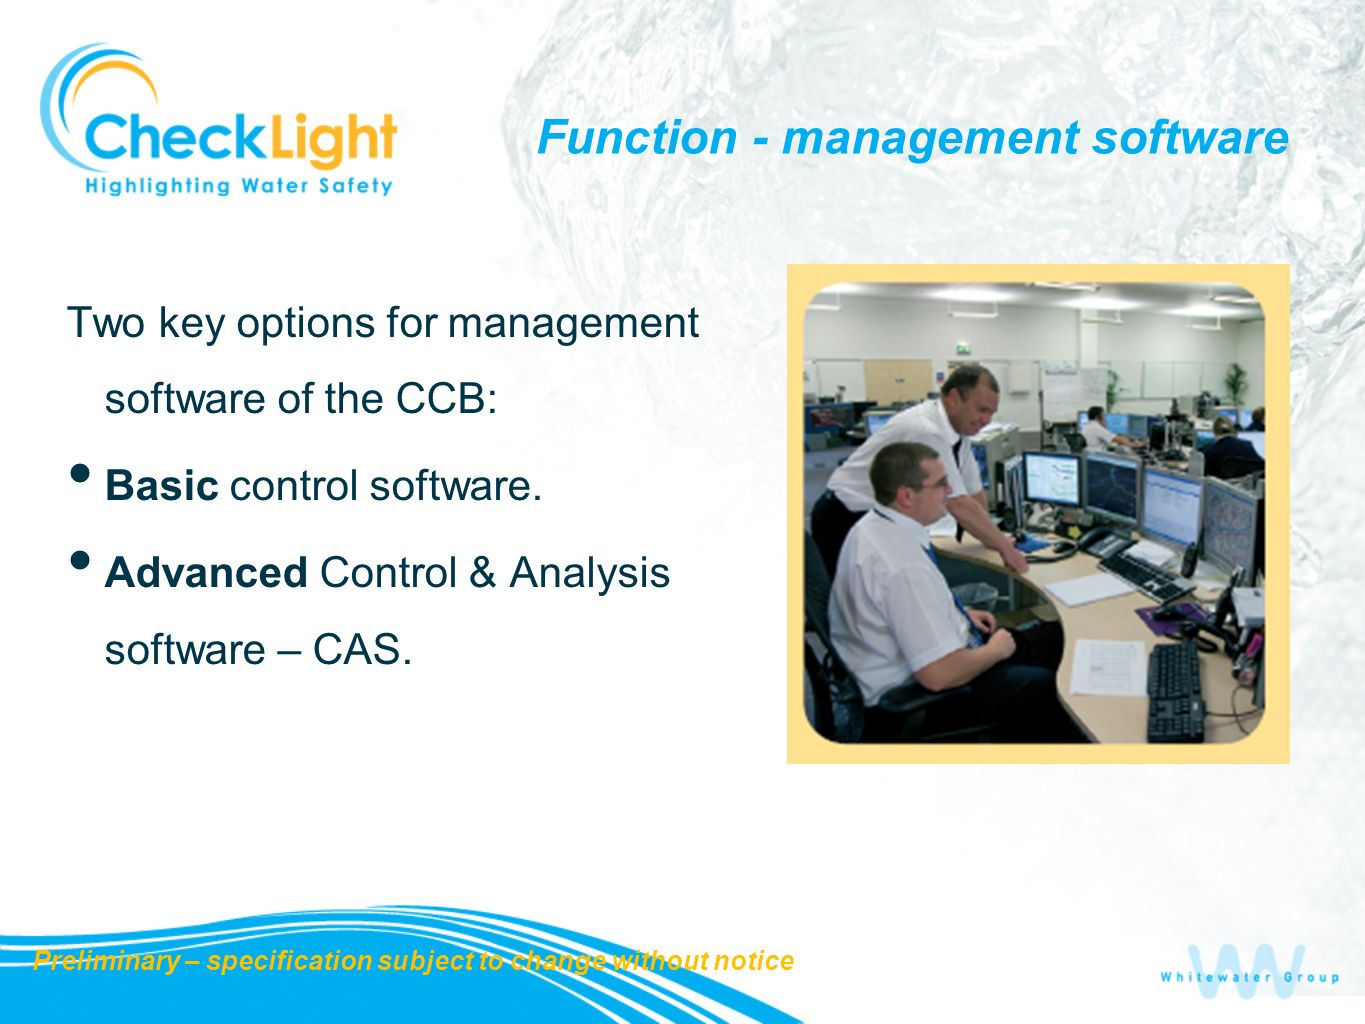 Two key options for management software of the CCB: Basic control software.